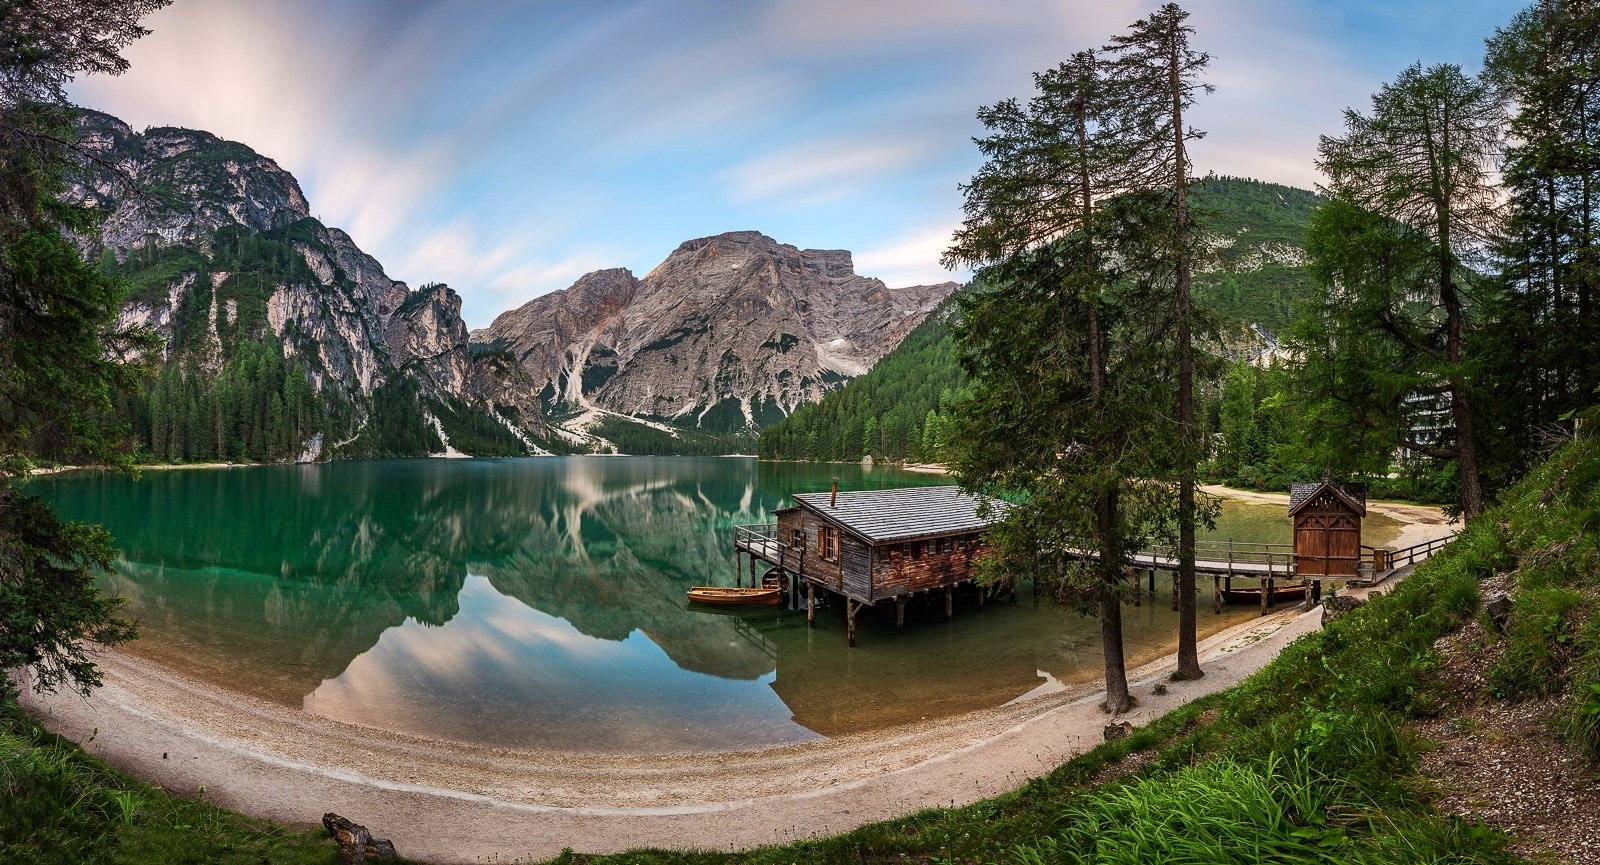 General 1600x865 photography landscape nature panorama lake reflection boathouses mountains summer forest beach trees Alps Italy morning sunlight